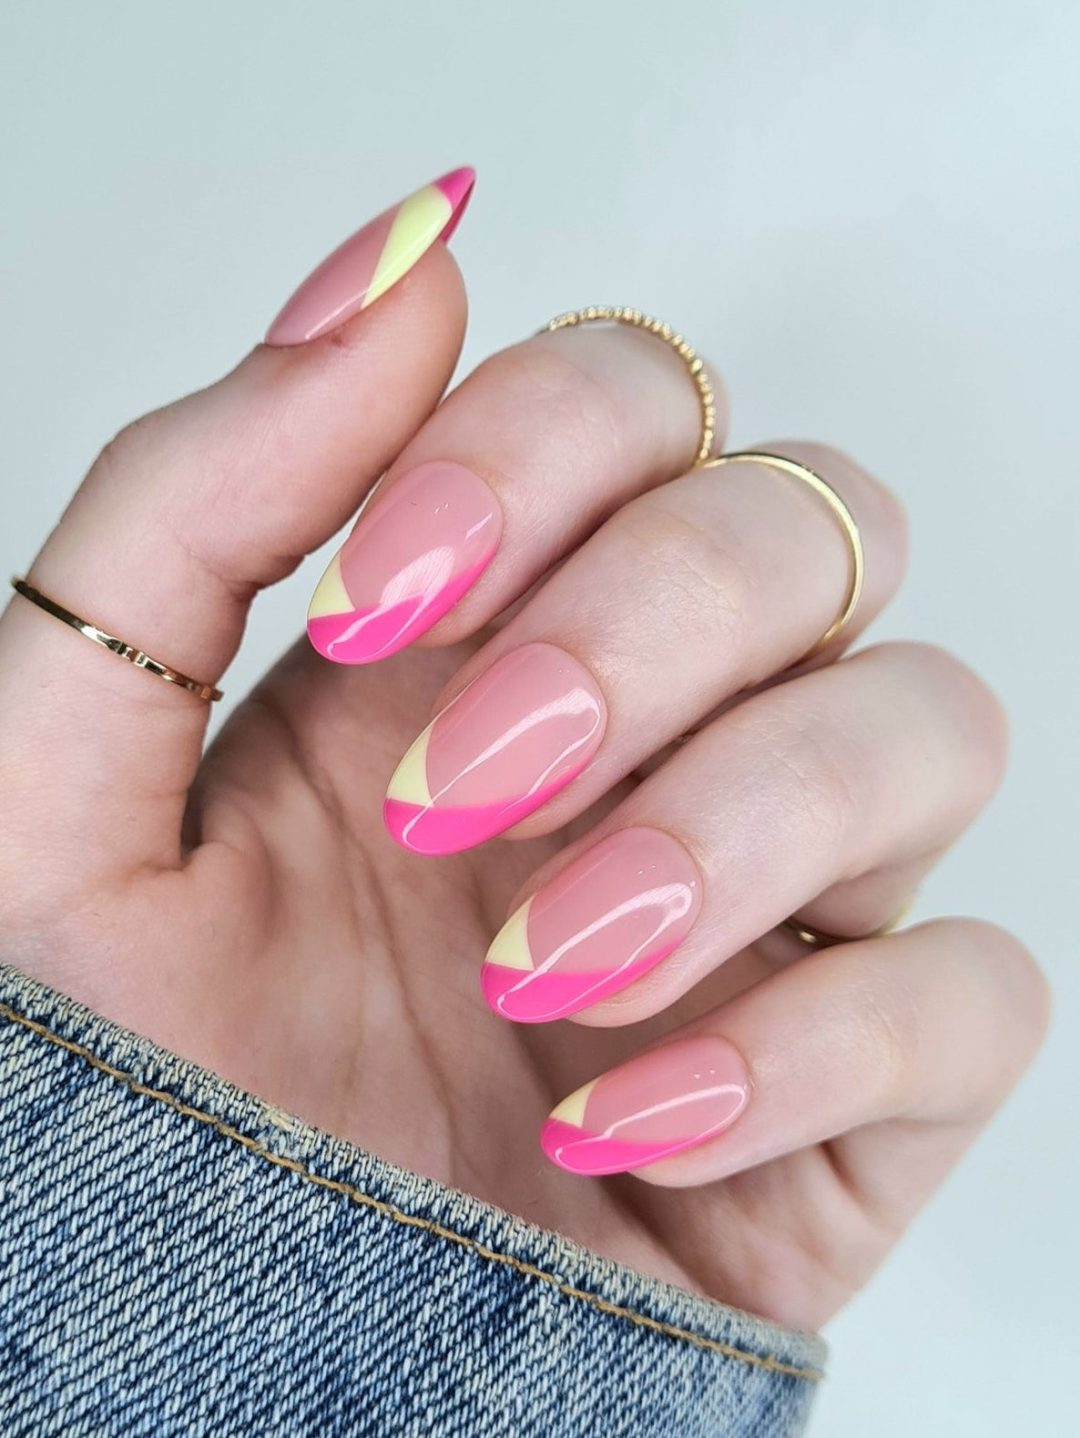 Modern colorful French tip nails with pink and light green